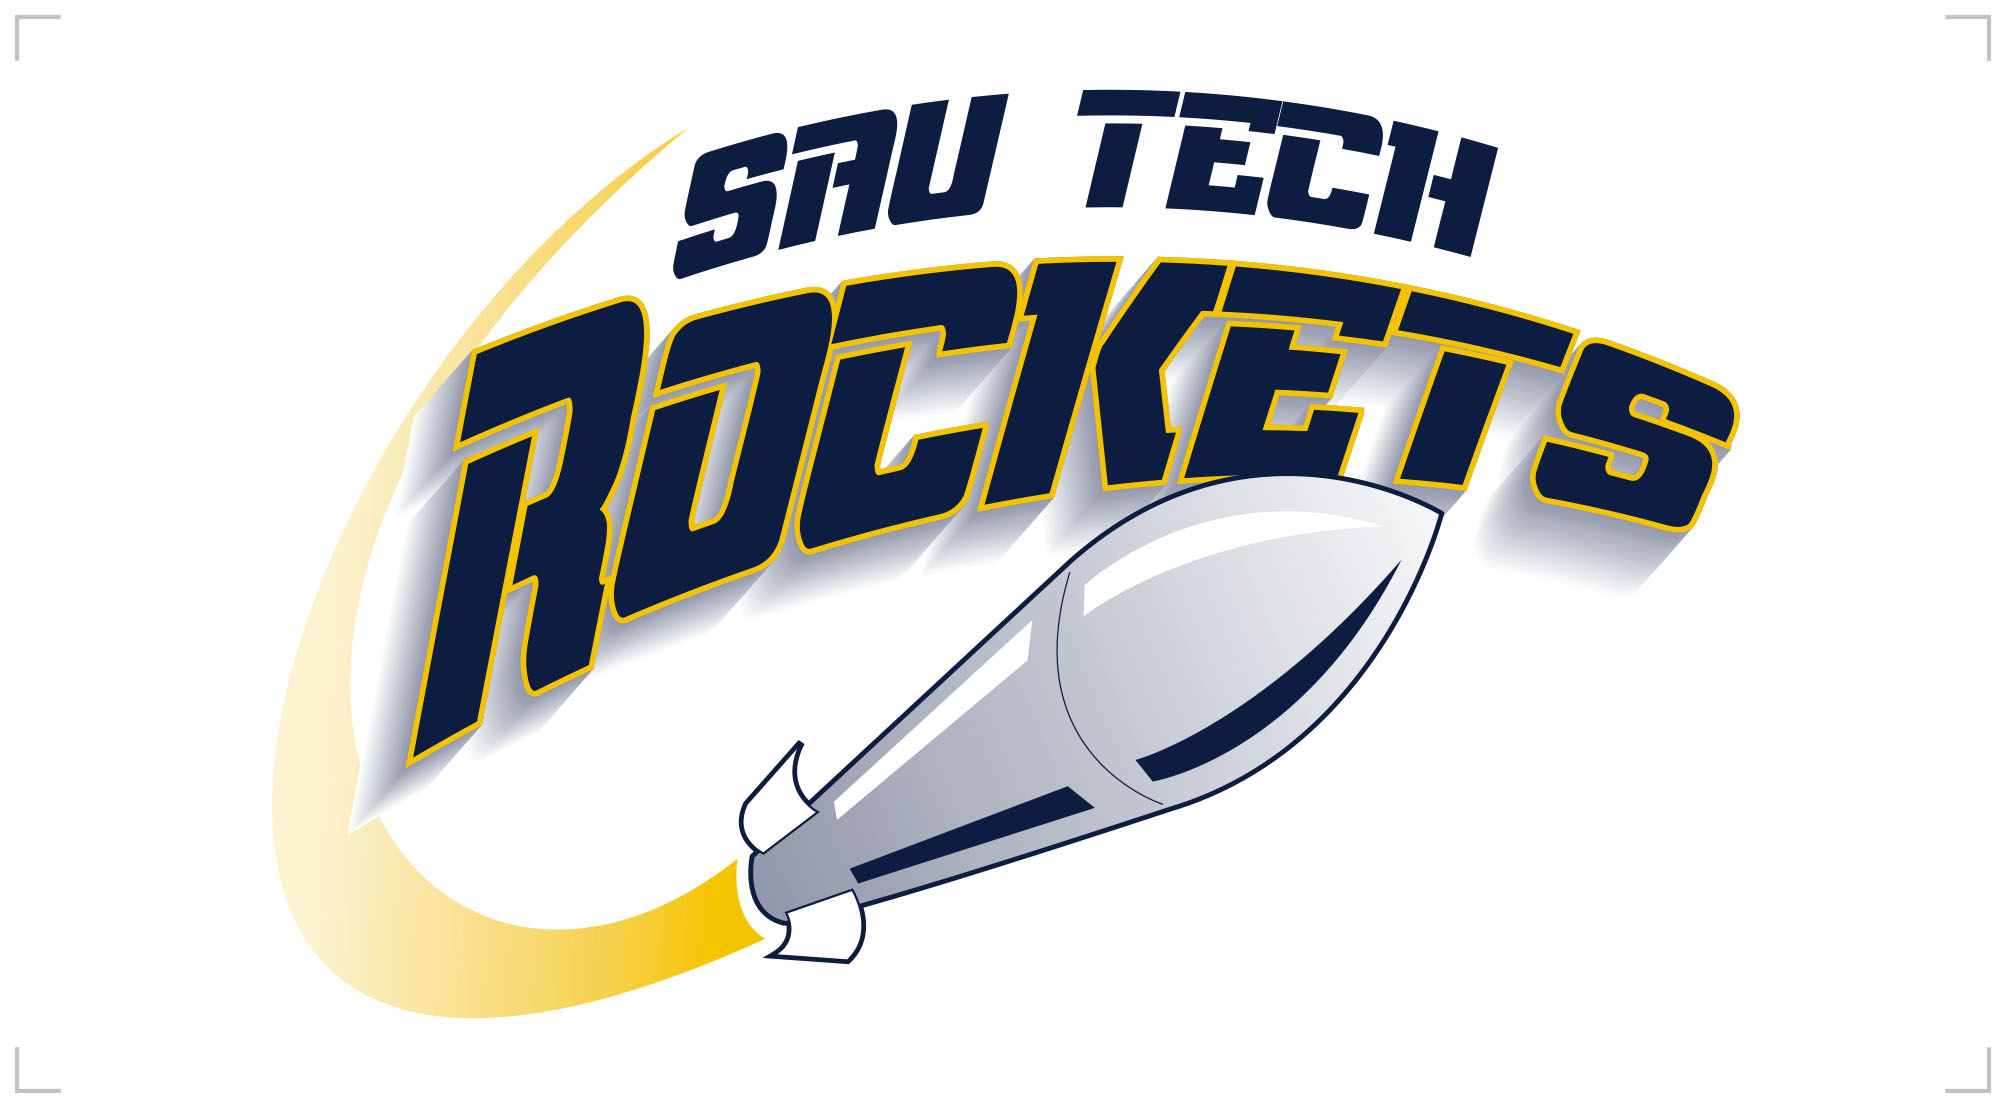 SAU Tech Rockets Decal